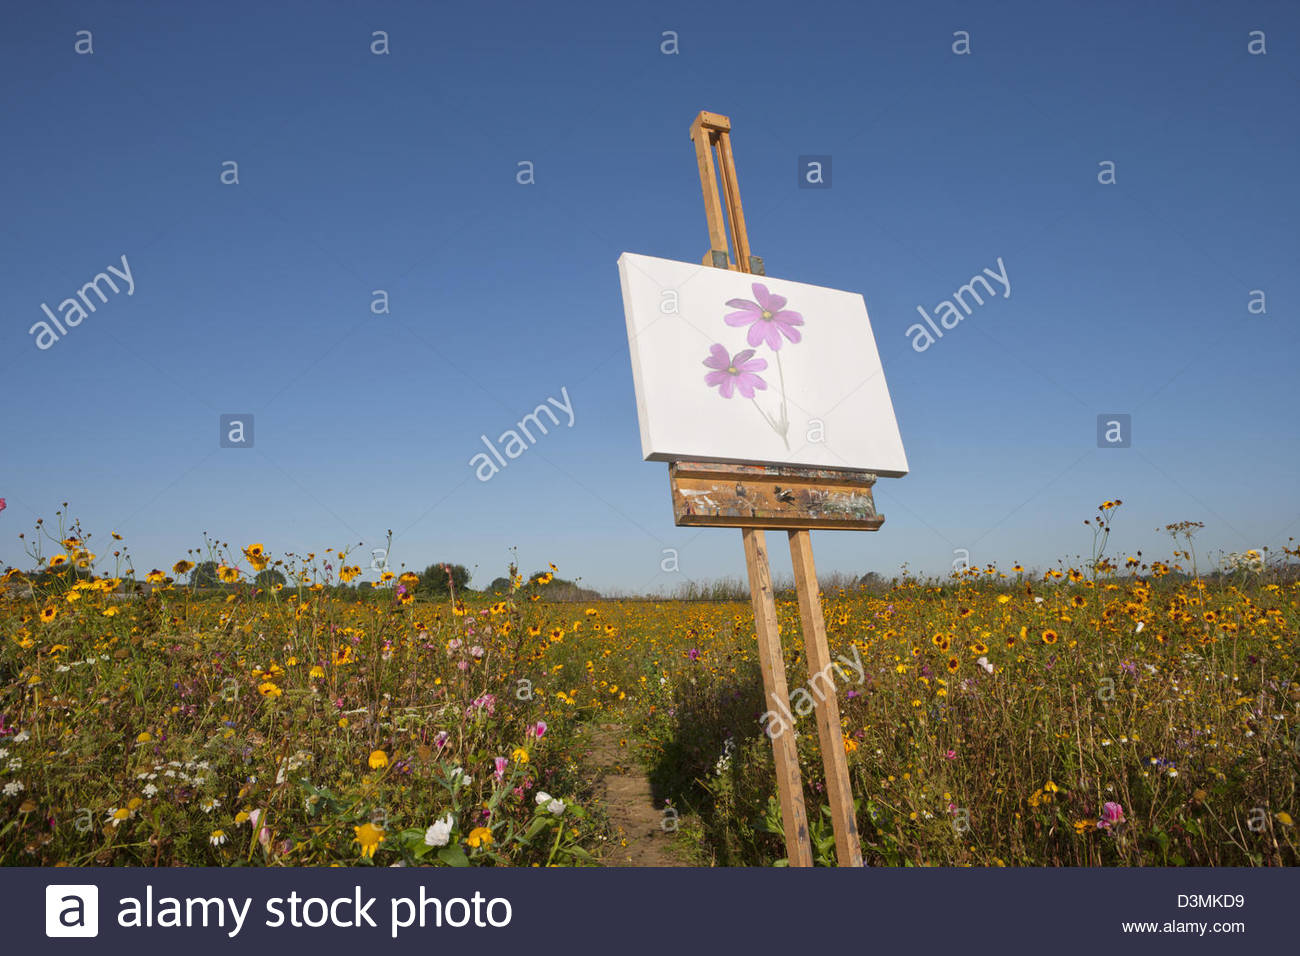 Blank canvas on easel in sunny wildflower field - Stock Image